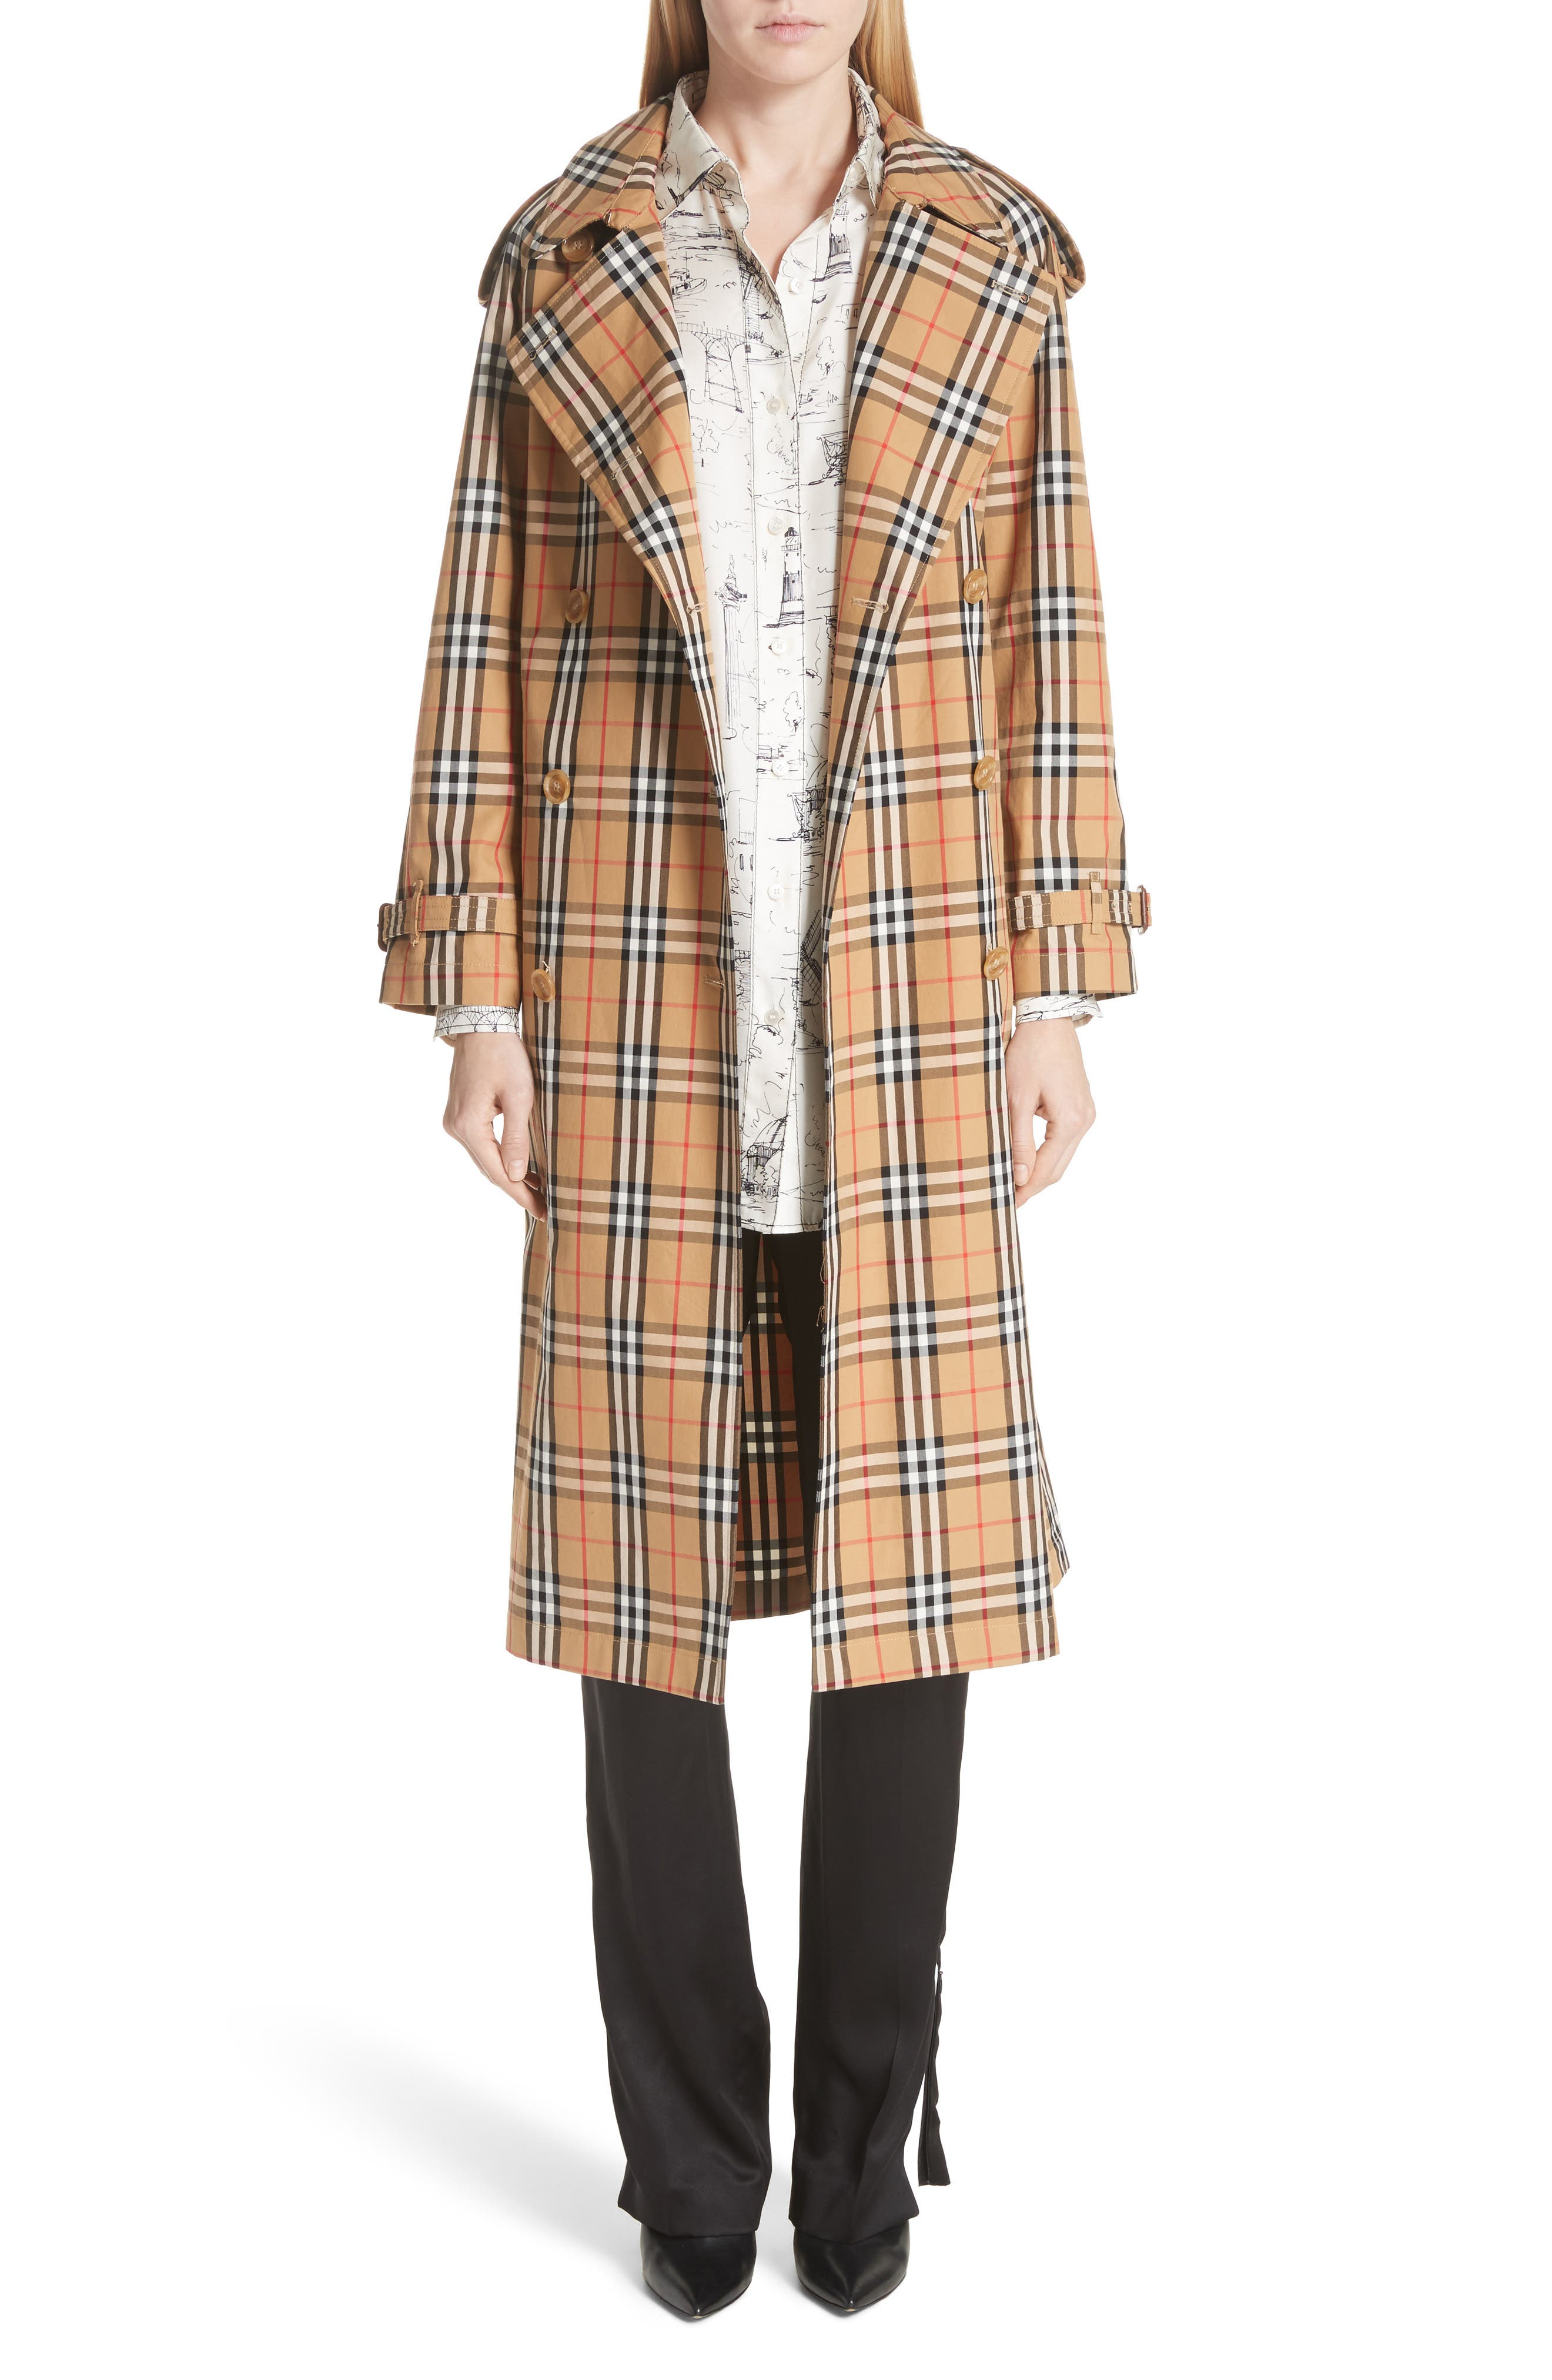 BURBERRY, Eastheath Vintage Check Trench Coat, Alternate thumbnail 8, color, ANTIQUE YELLOW